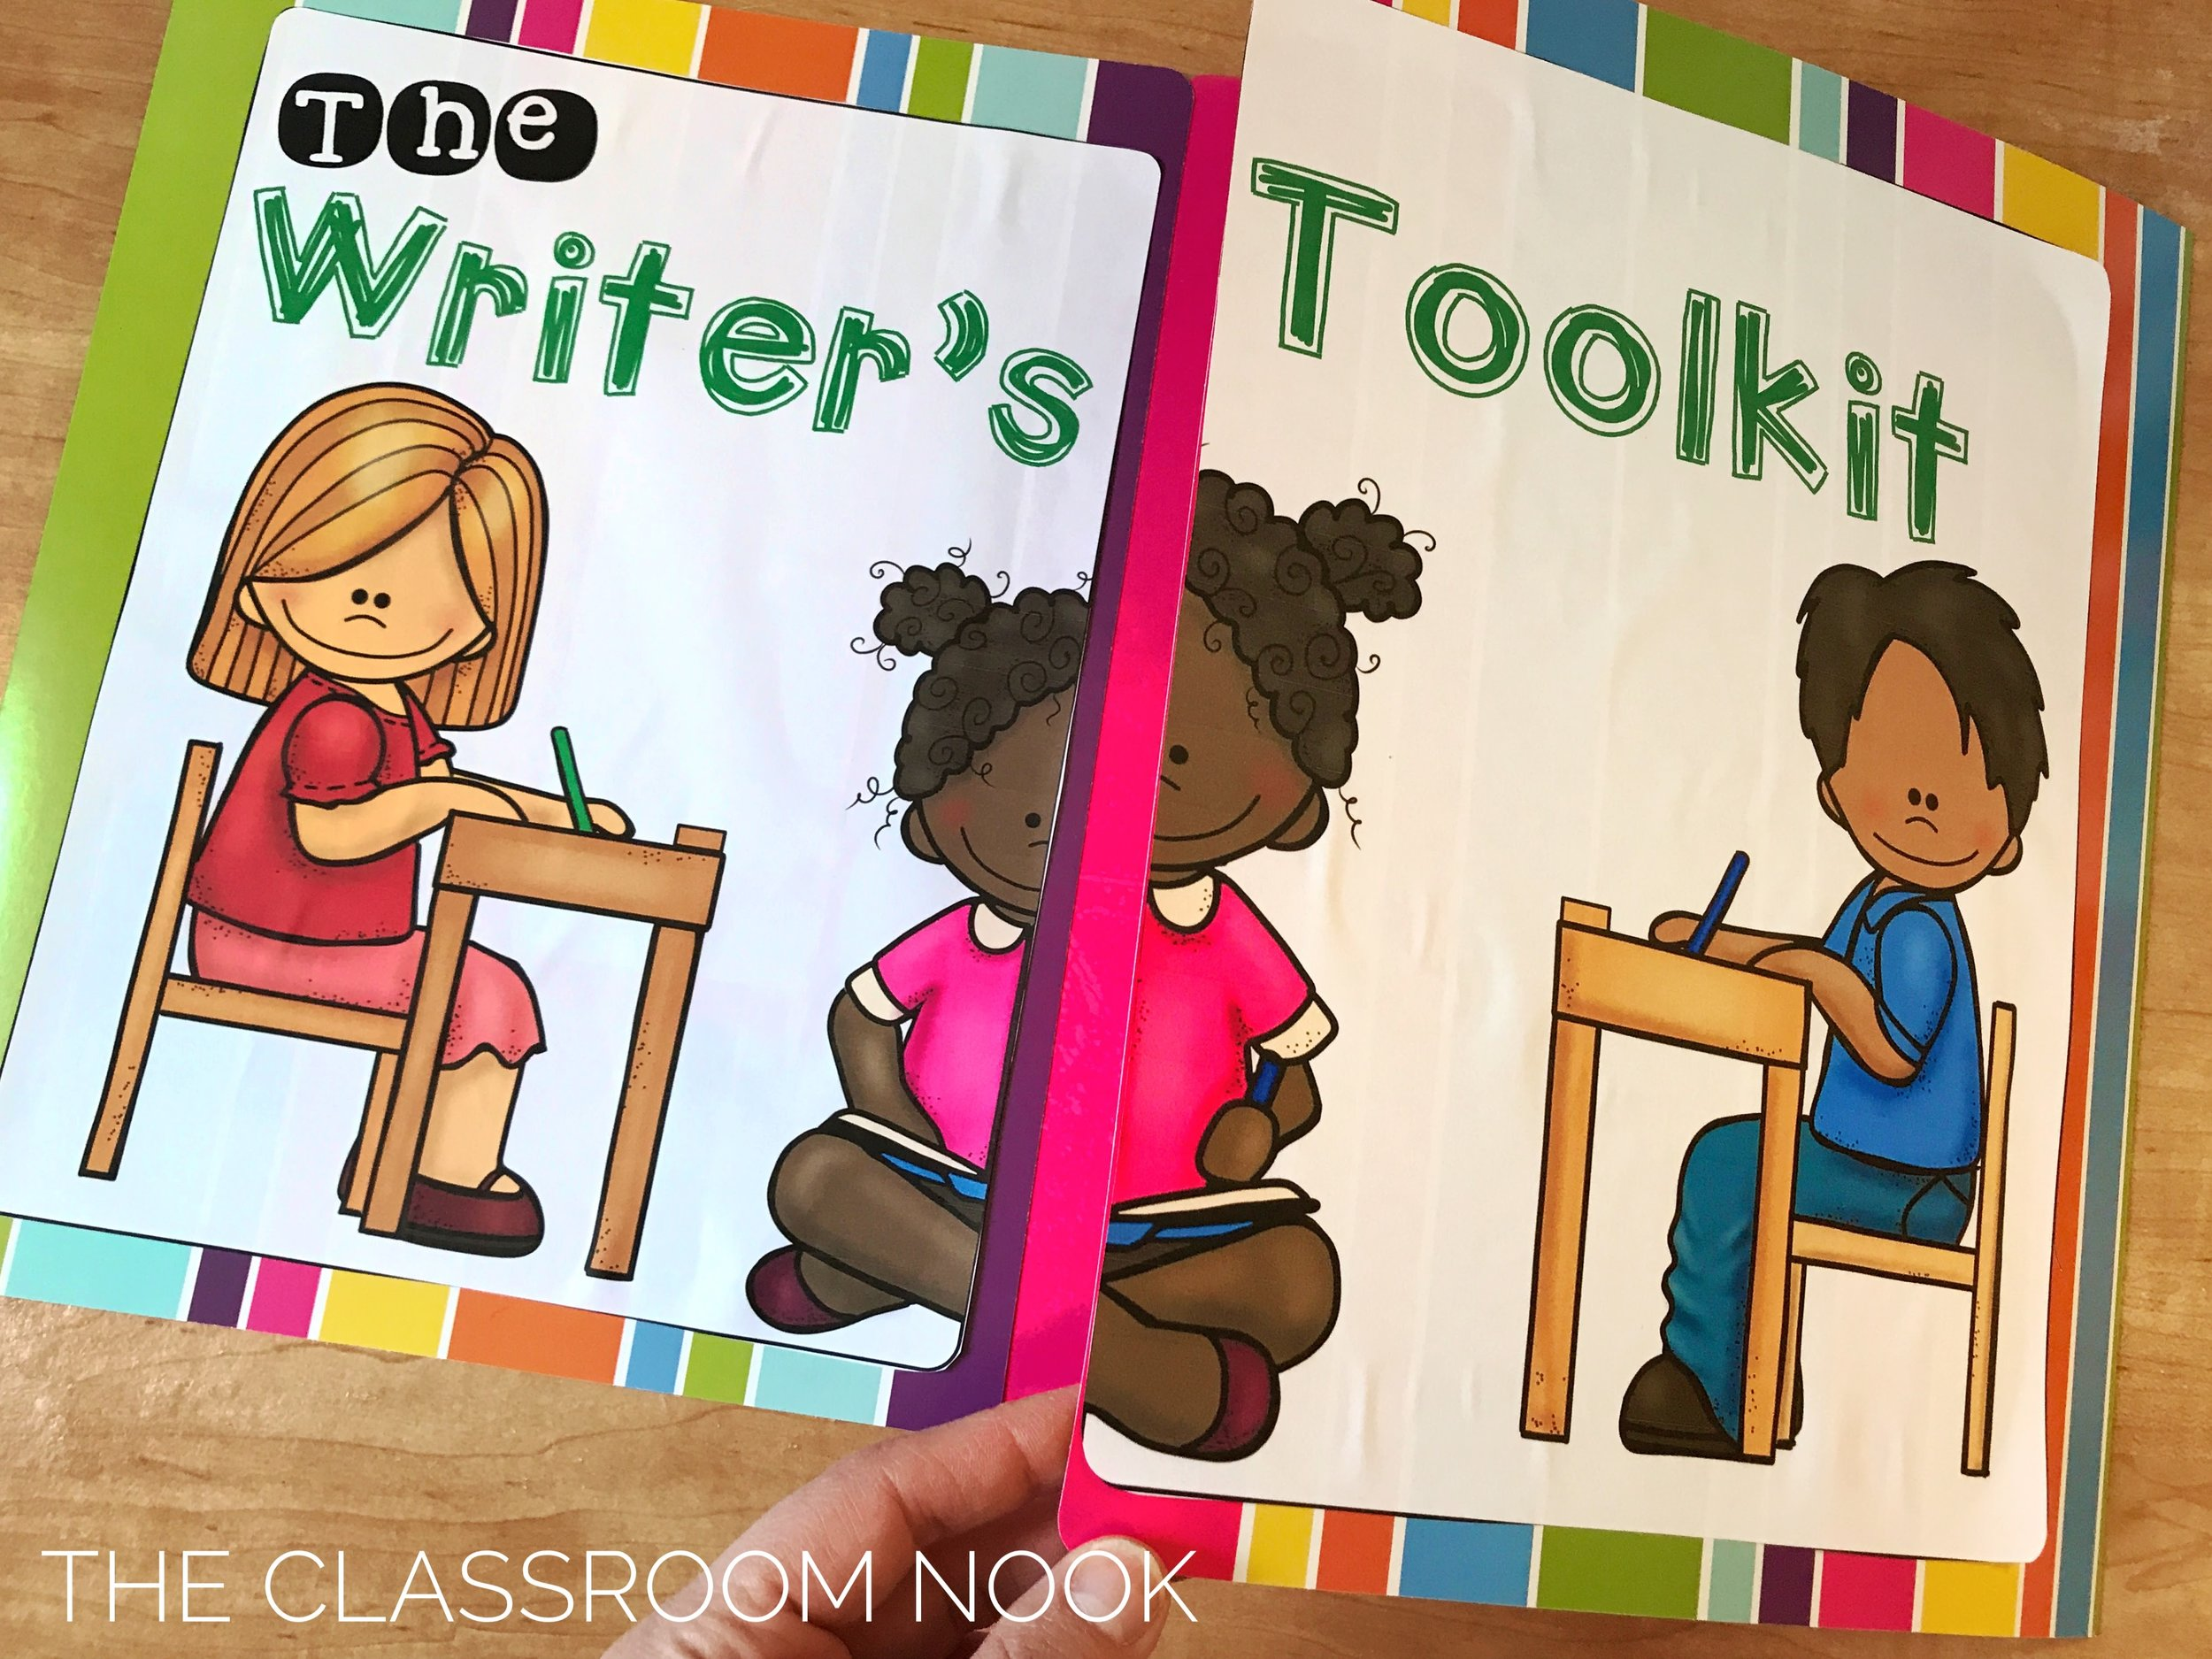 A writer's toolkit uses two file folder taped together and assembled with some writing resources on the inside.